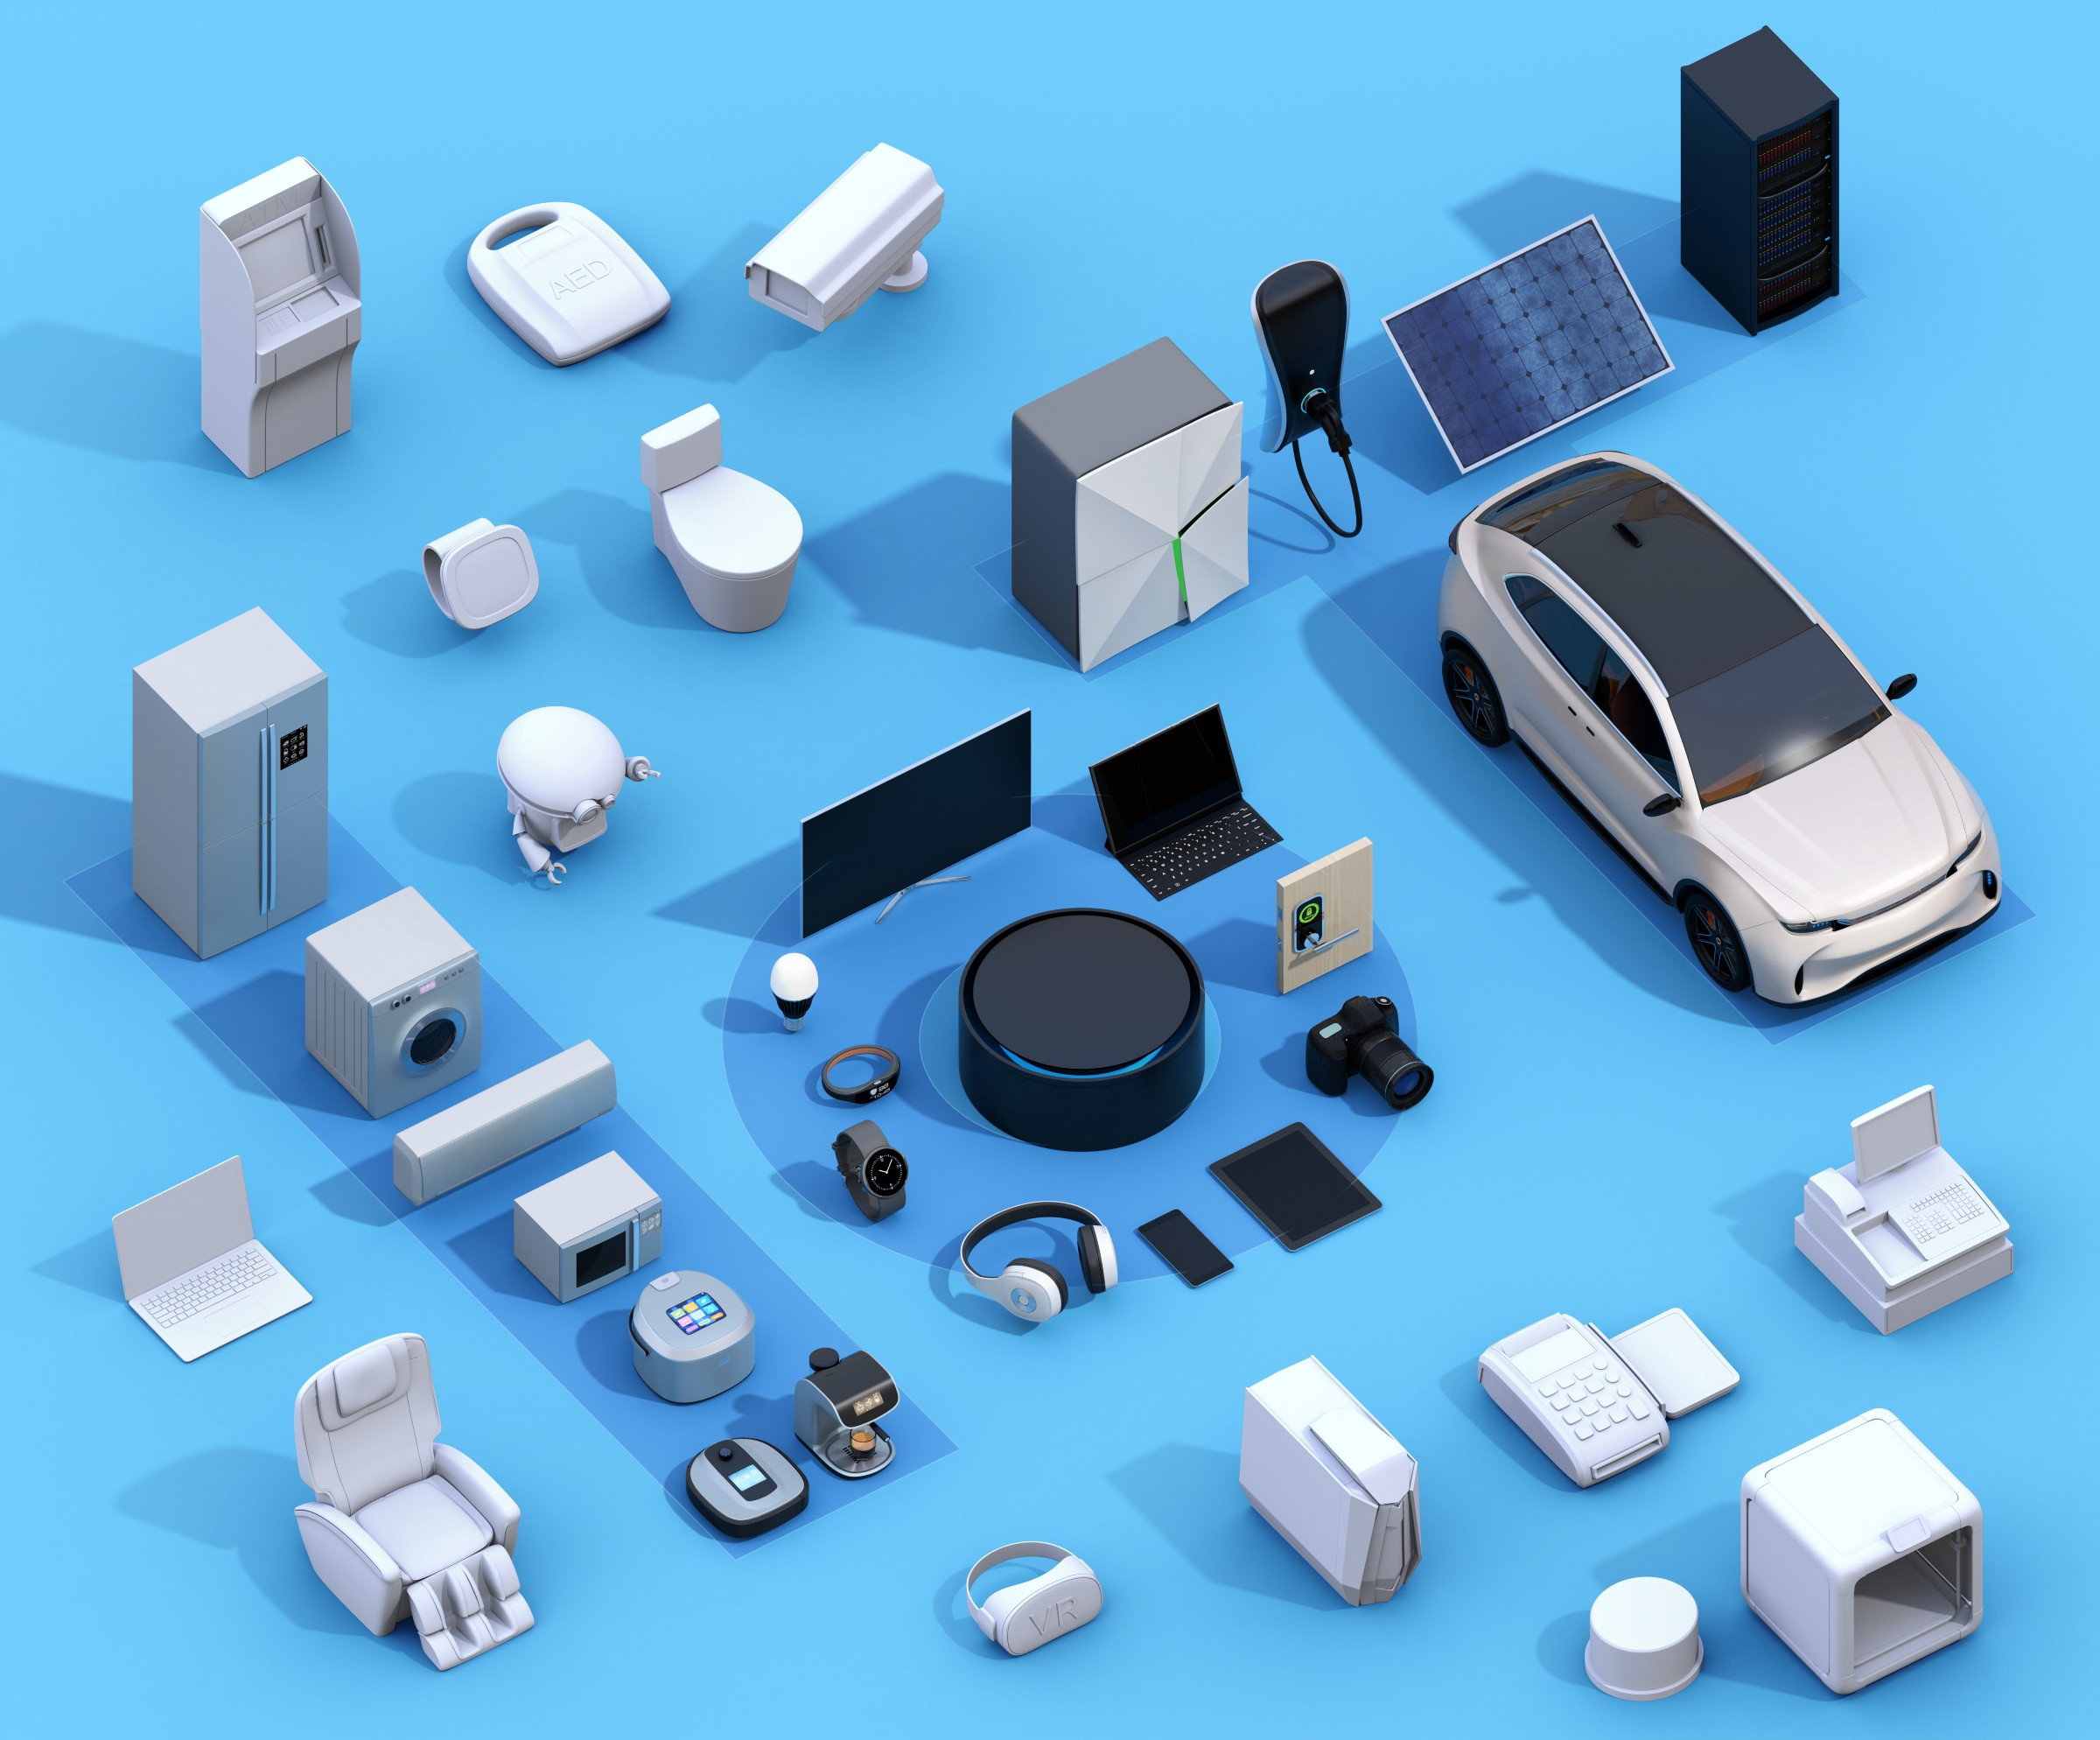 /why-retaining-ip-in-iot-devices-has-been-all-but-impossible-until-now-363cae6ce833 feature image